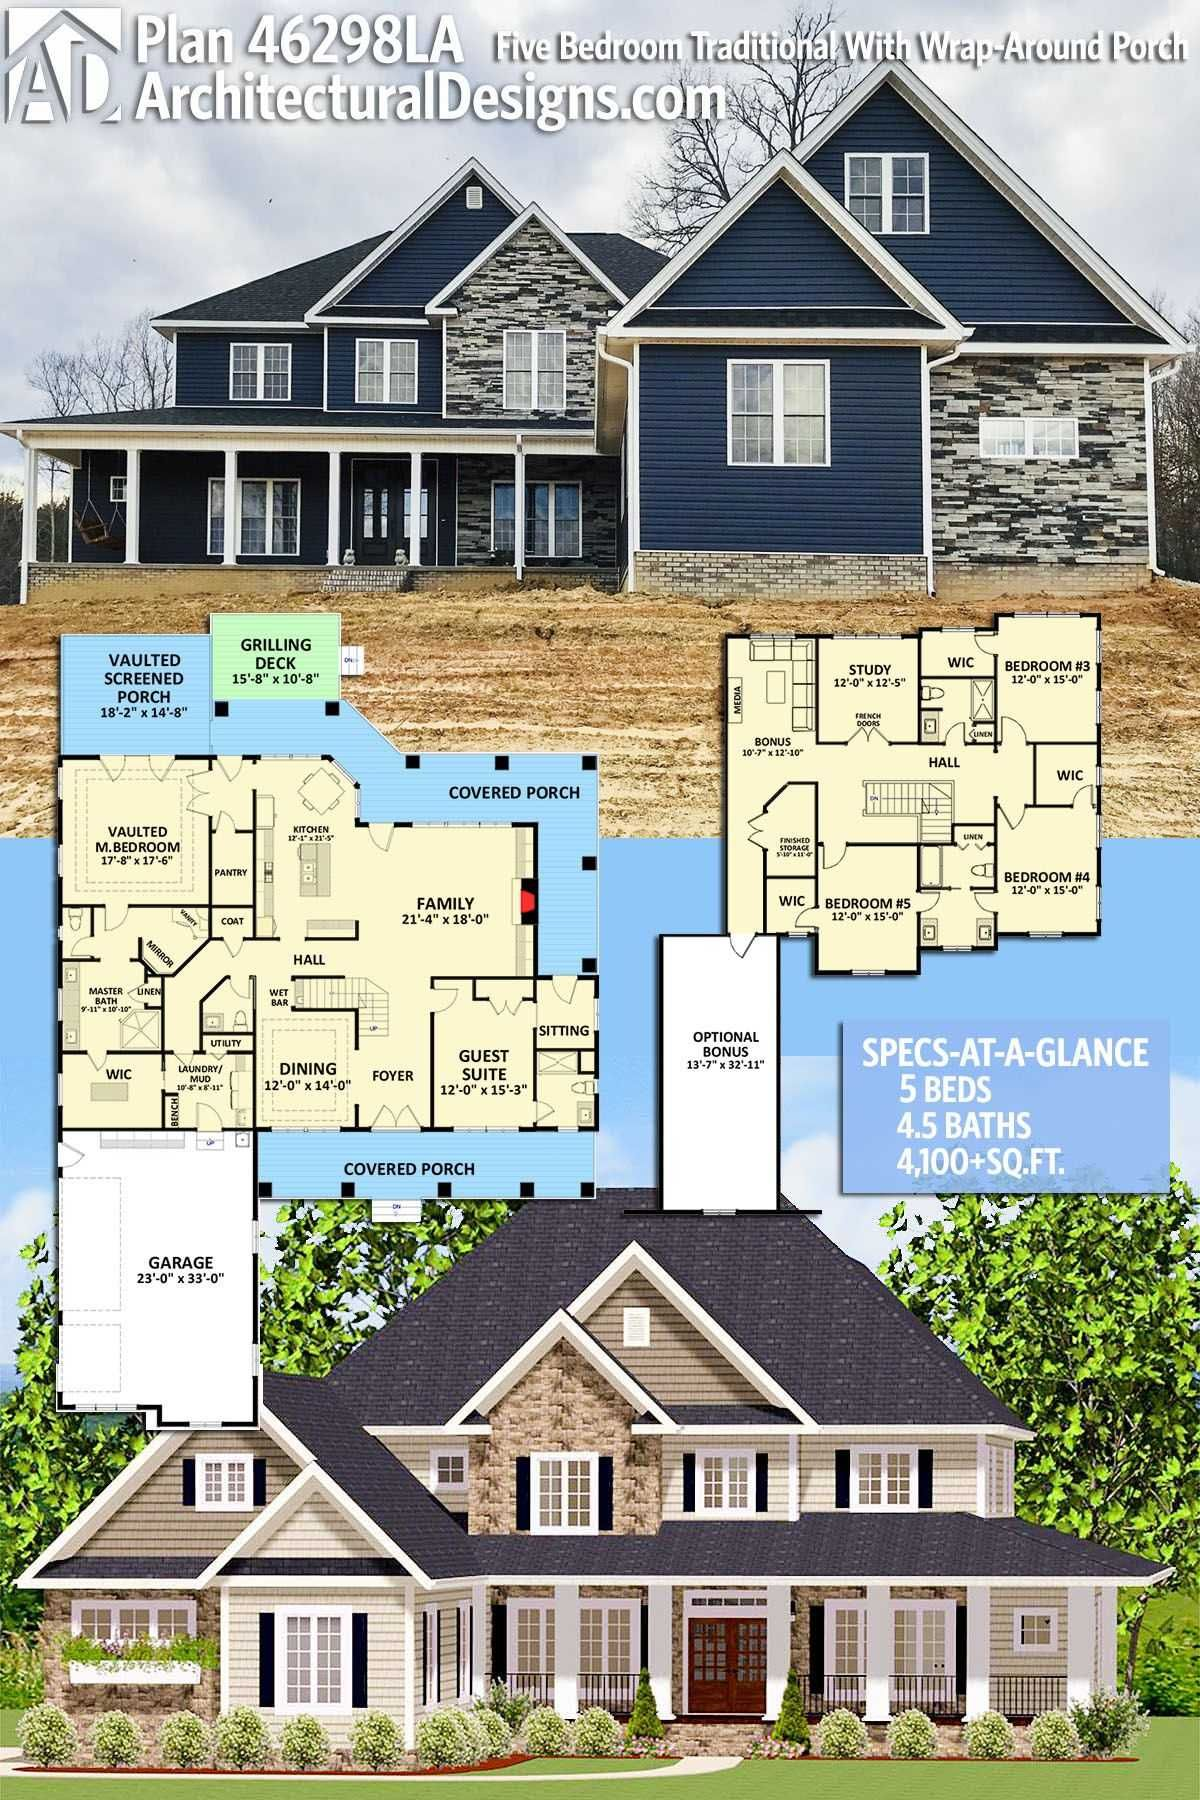 Open Concept Wrap Around Porch Farmhouse Plans Inspirational Plan La Five Bedroom Traditional With Architectural Design House Plans House Plans Farmhouse Plans